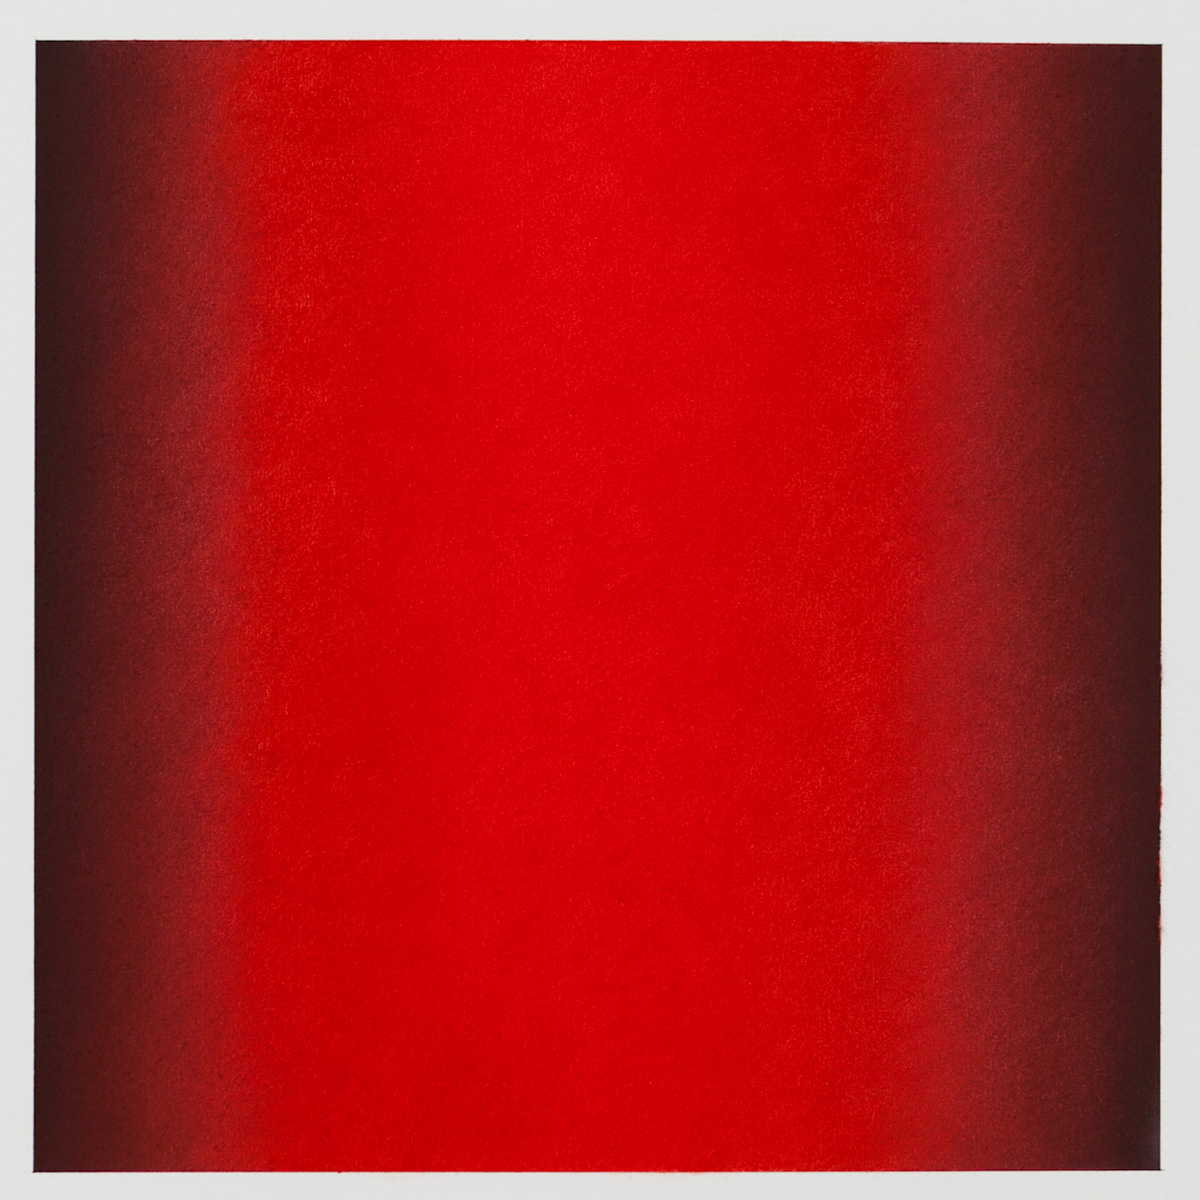 Red (Black), Primary Red Blue Series, 2011, pastel on paper, image: 14 x 14 in. (36 x 36 cm.), sheet: 30 x 22 in. (76 x 56 cm.)